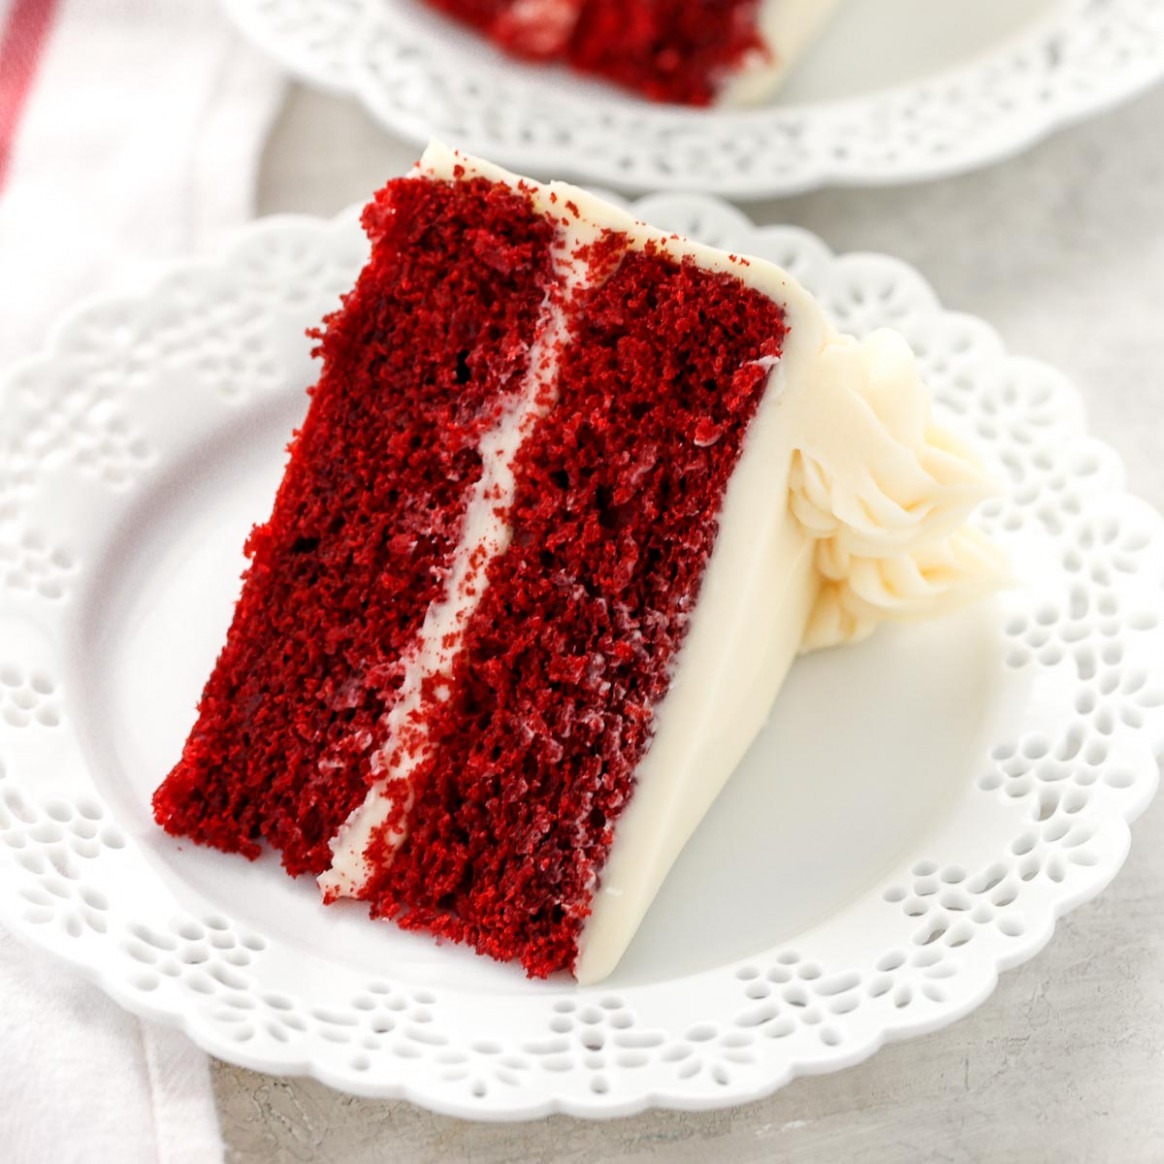 The BEST Red Velvet Cake - Live Well Bake Often